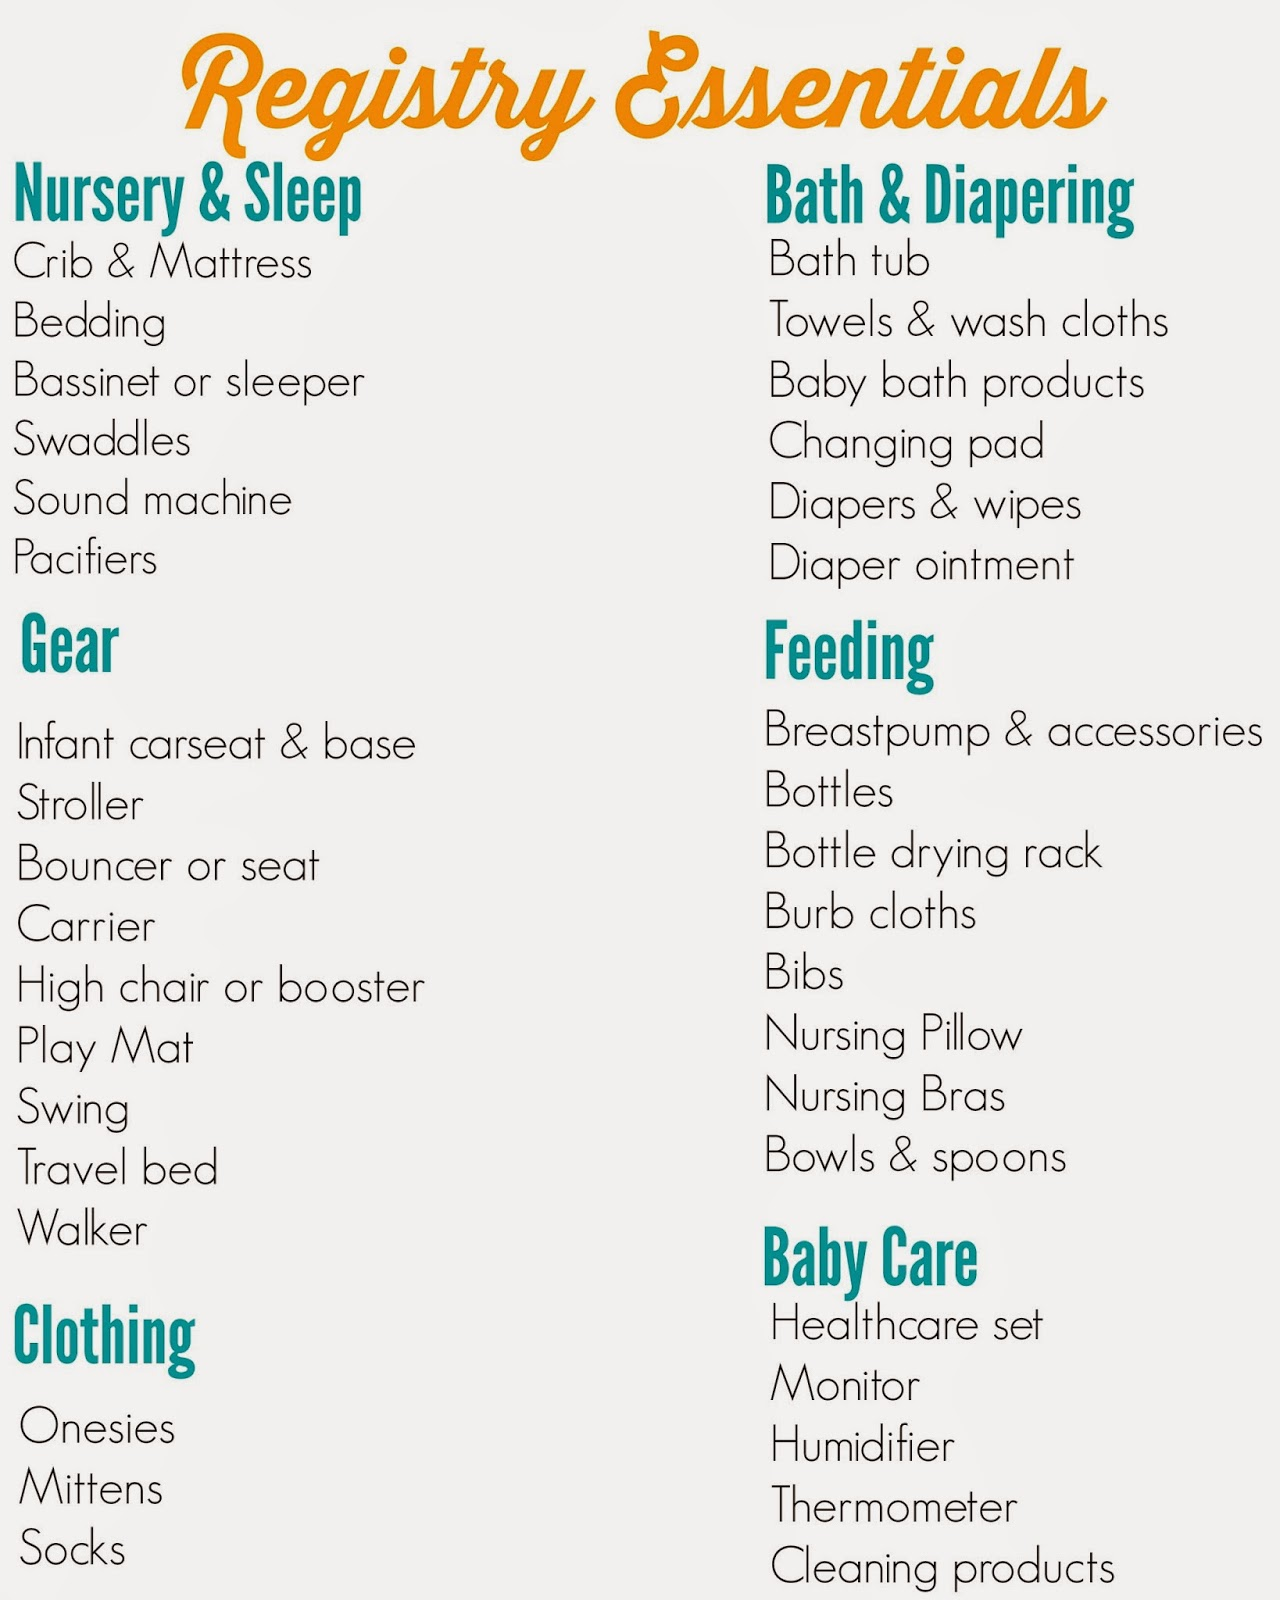 The Ultimate Registry Checklist - The Chirping Moms